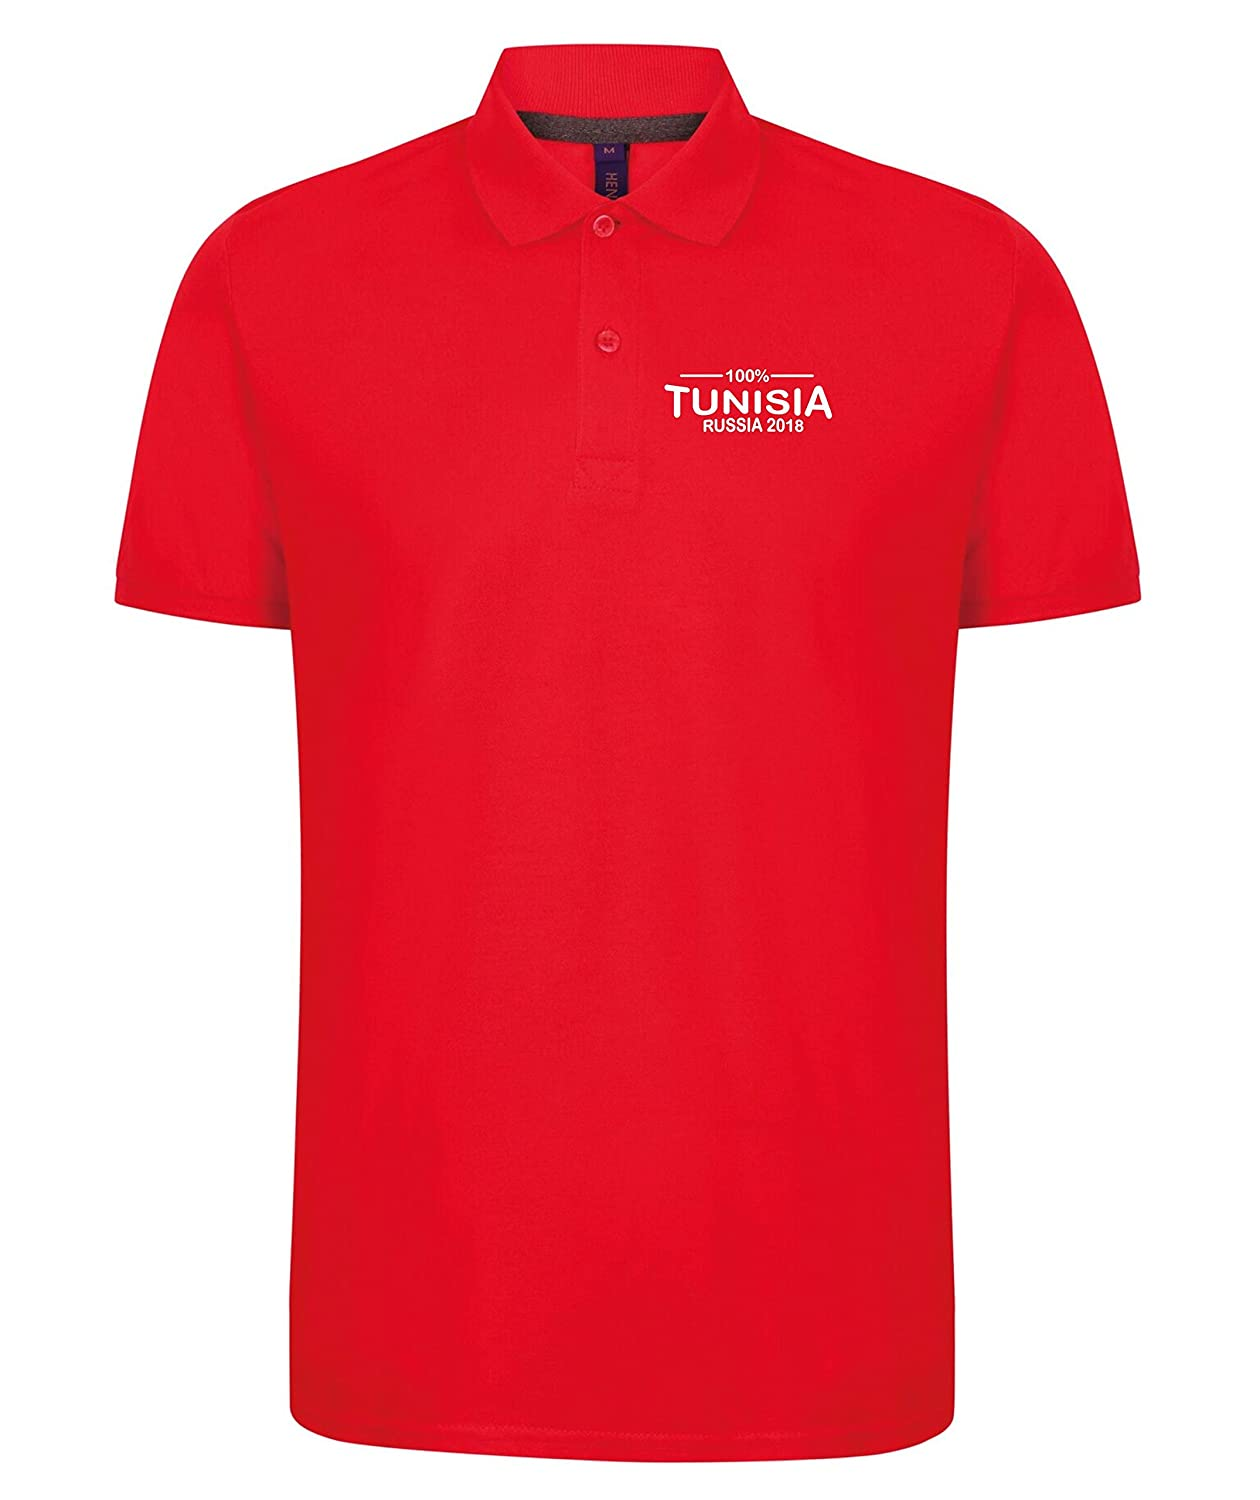 02a0c8c59e0 Novelty Polo's 100% Tunisia Football World Cup 2018 Polo Mens Red:  Amazon.co.uk: Clothing